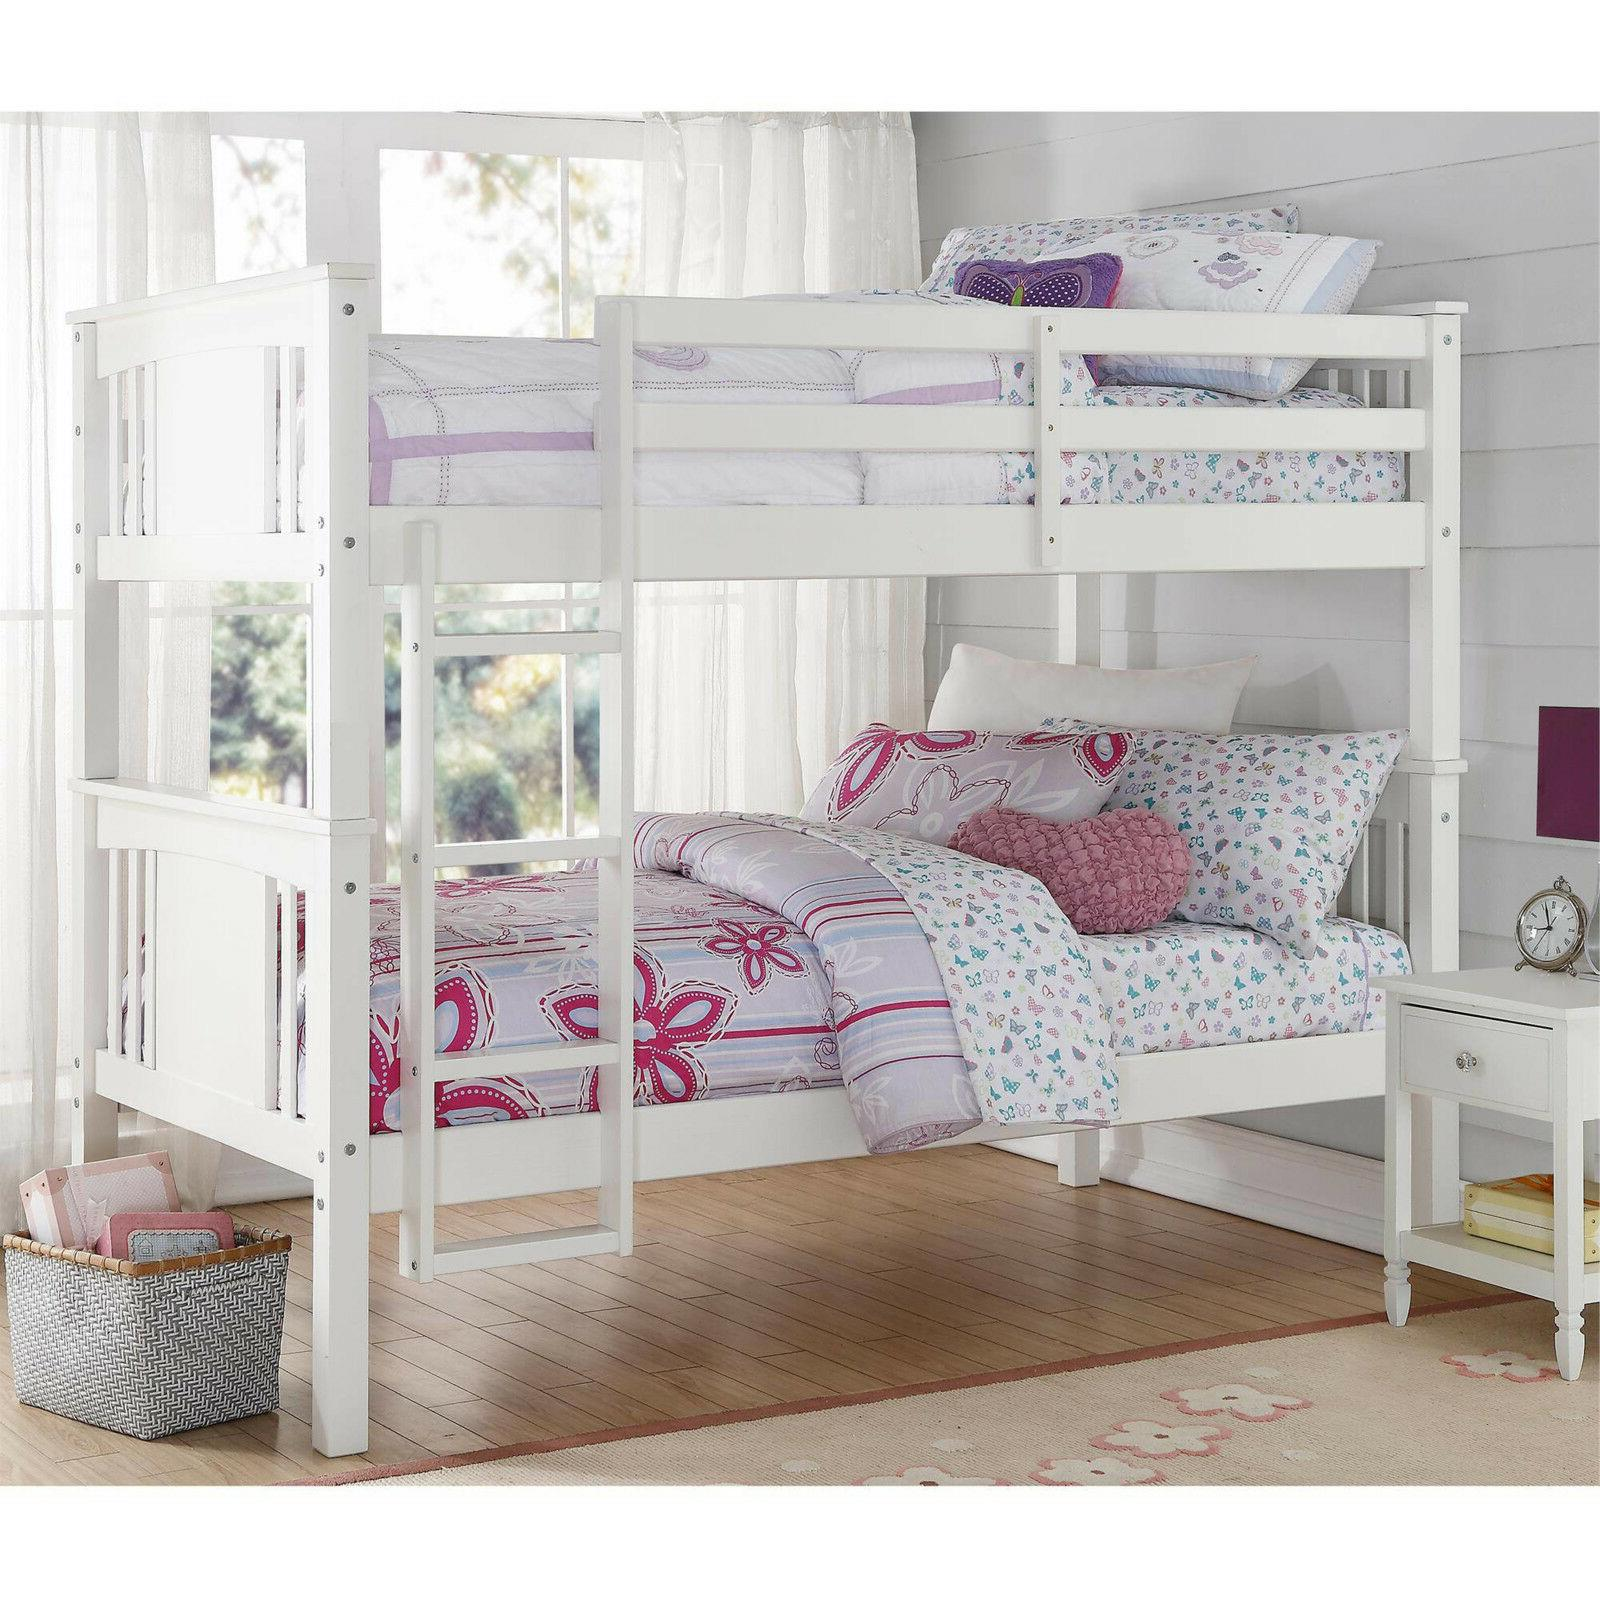 flynn twin kids room bunk bed over